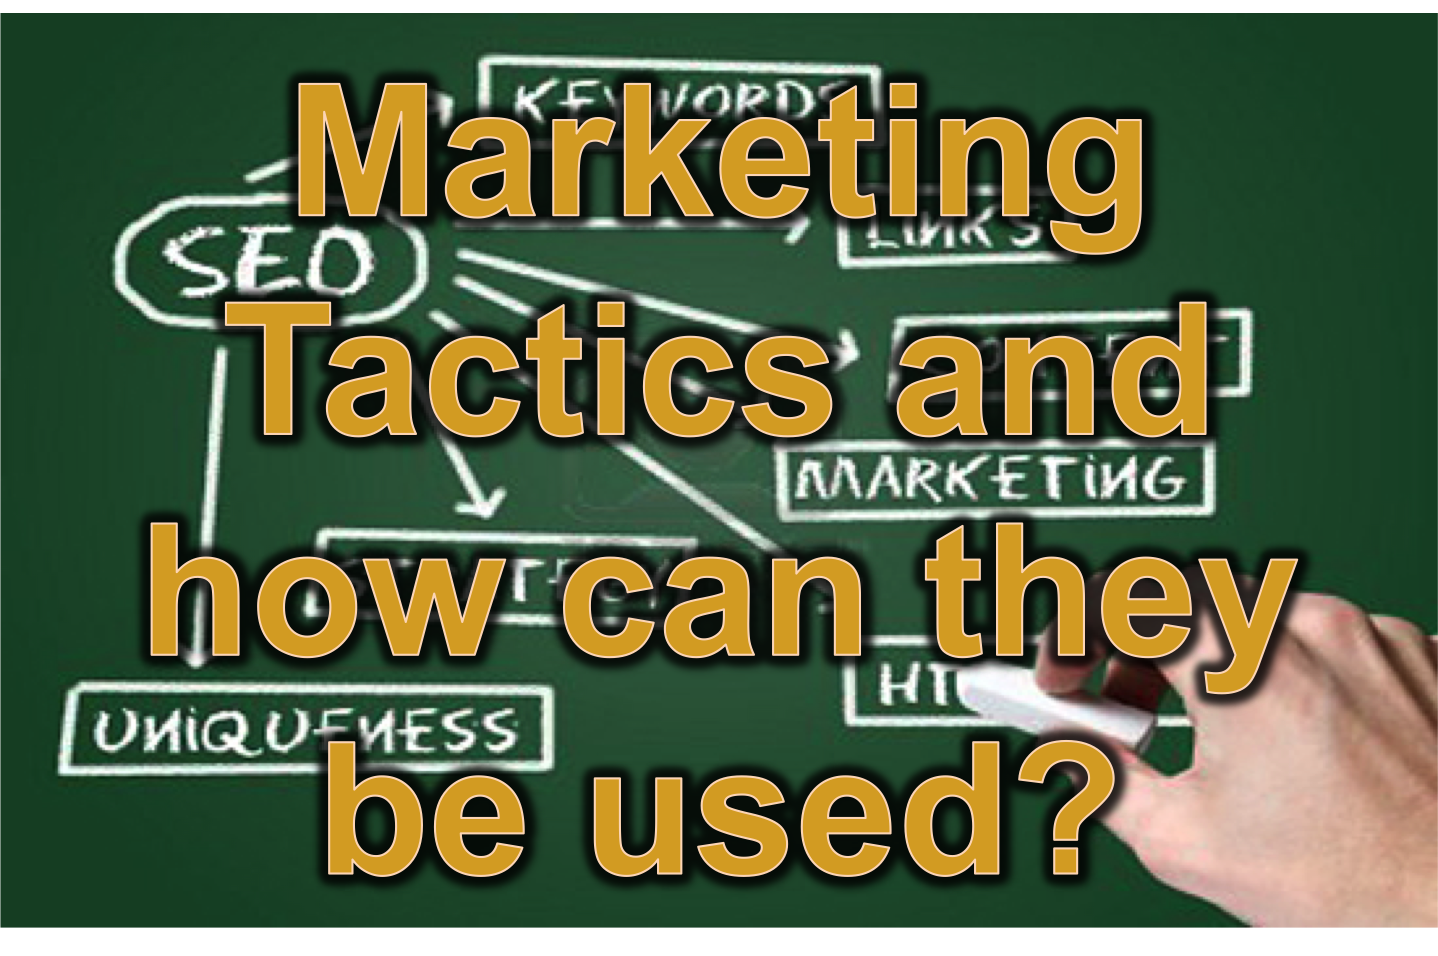 Is your company using marketing tactics when developing marketing plans?